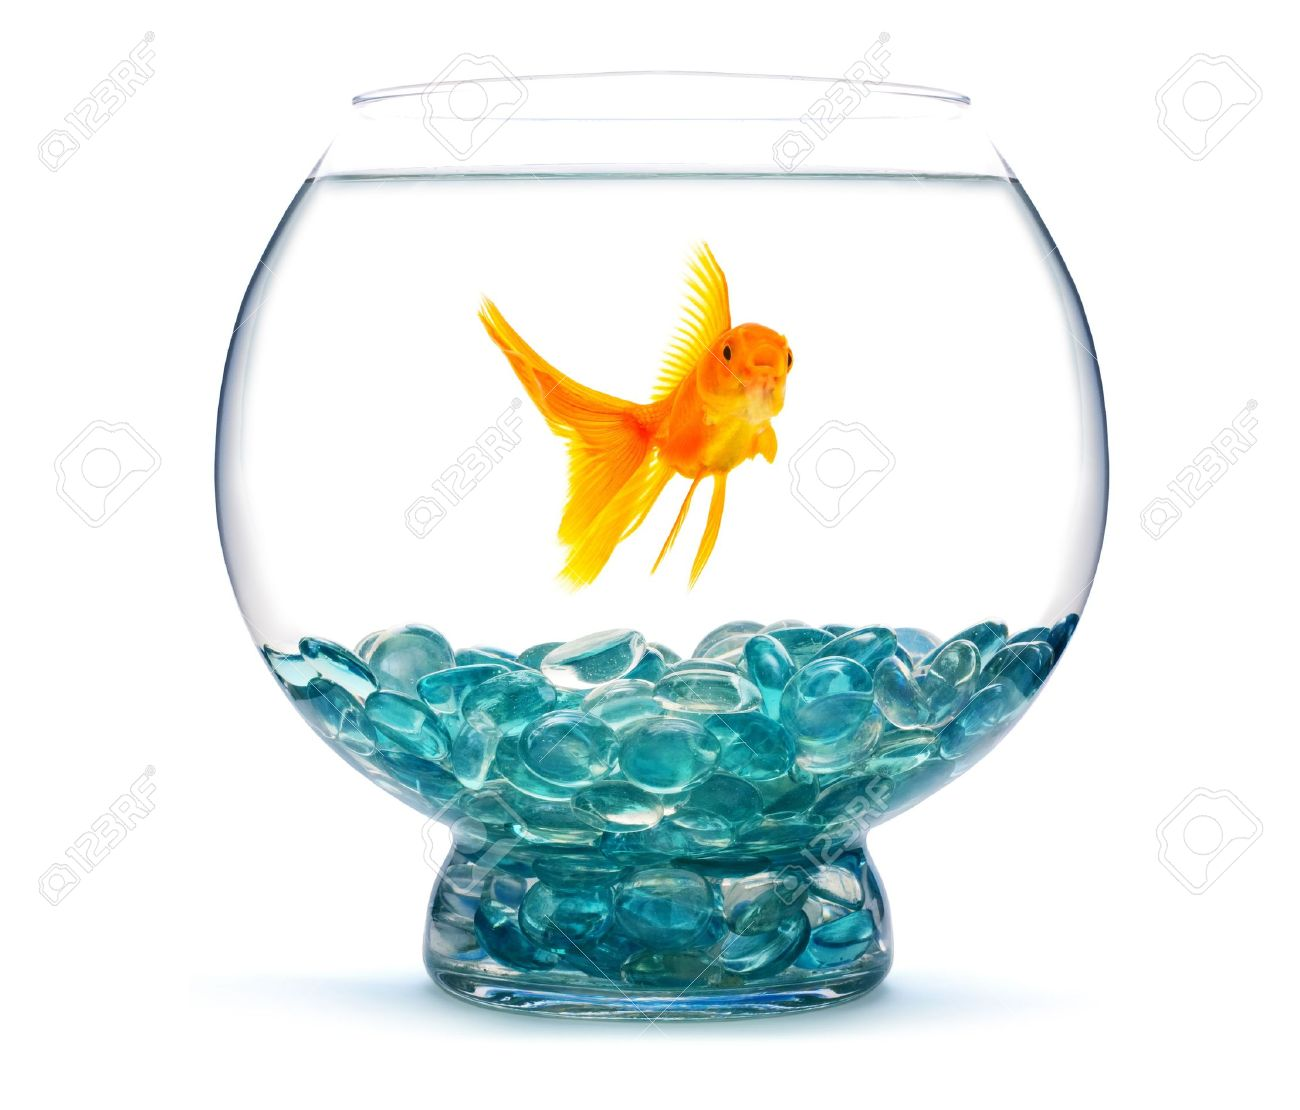 Gold fish in aquarium on a white background Stock Photo - 6496275